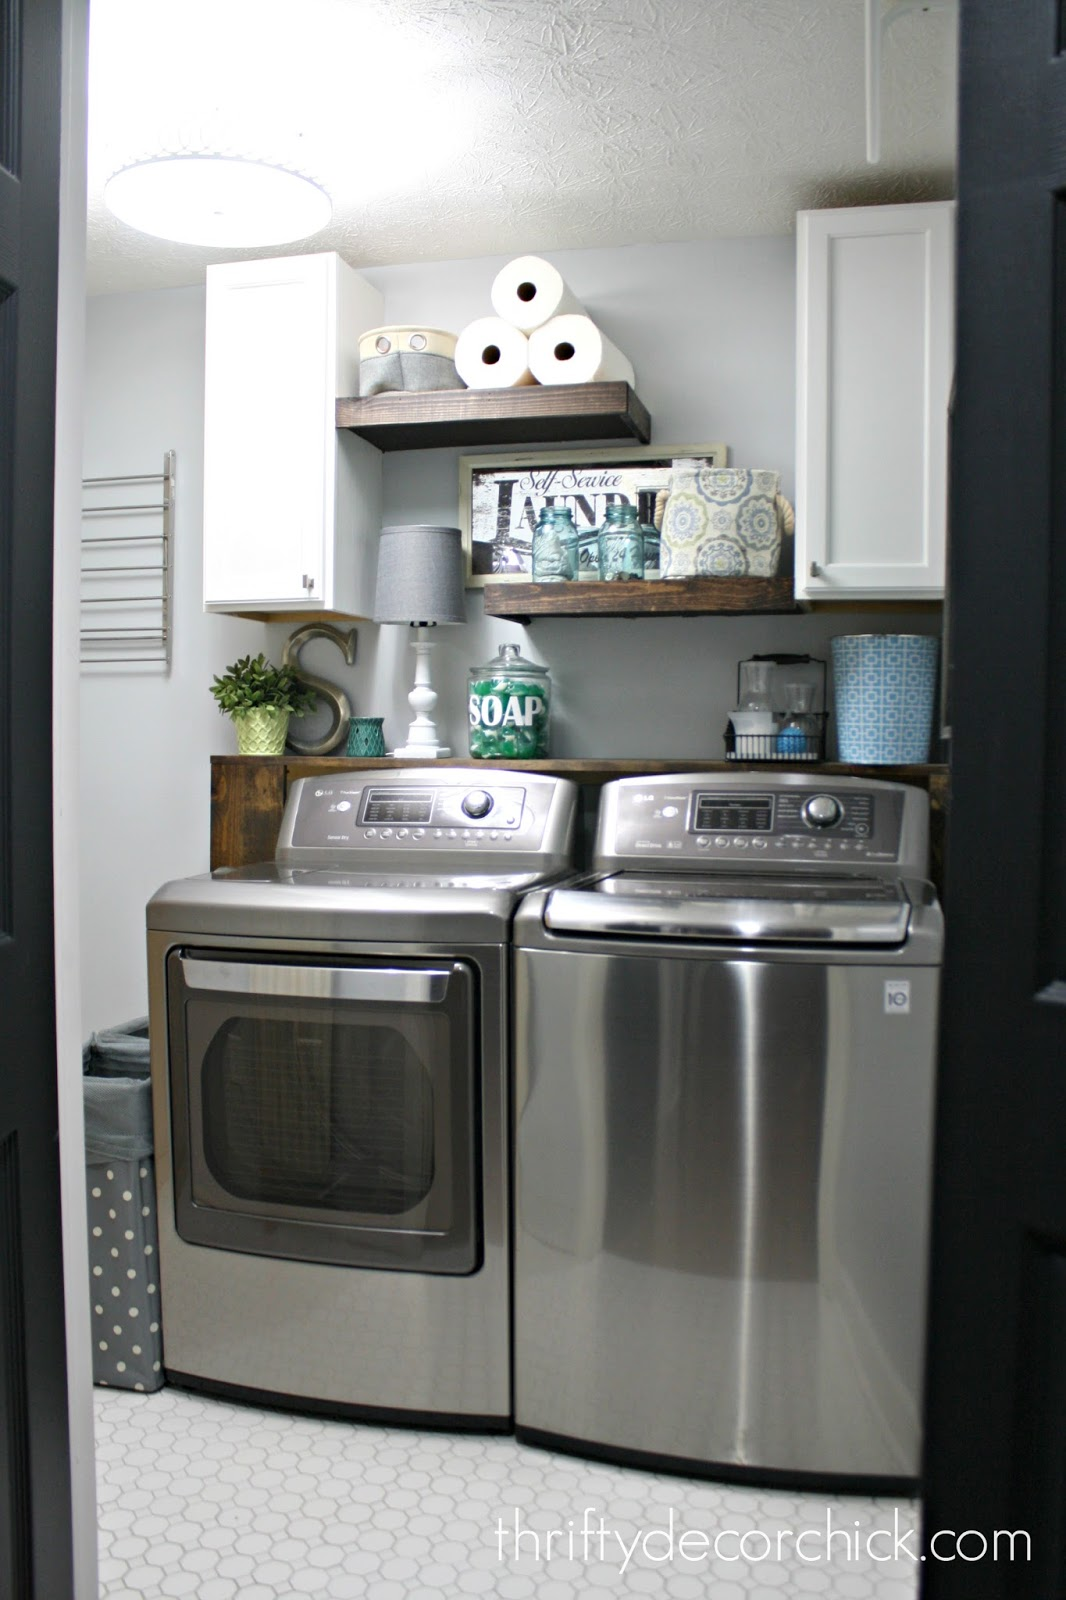 DIY wood shelves above washer and dryer